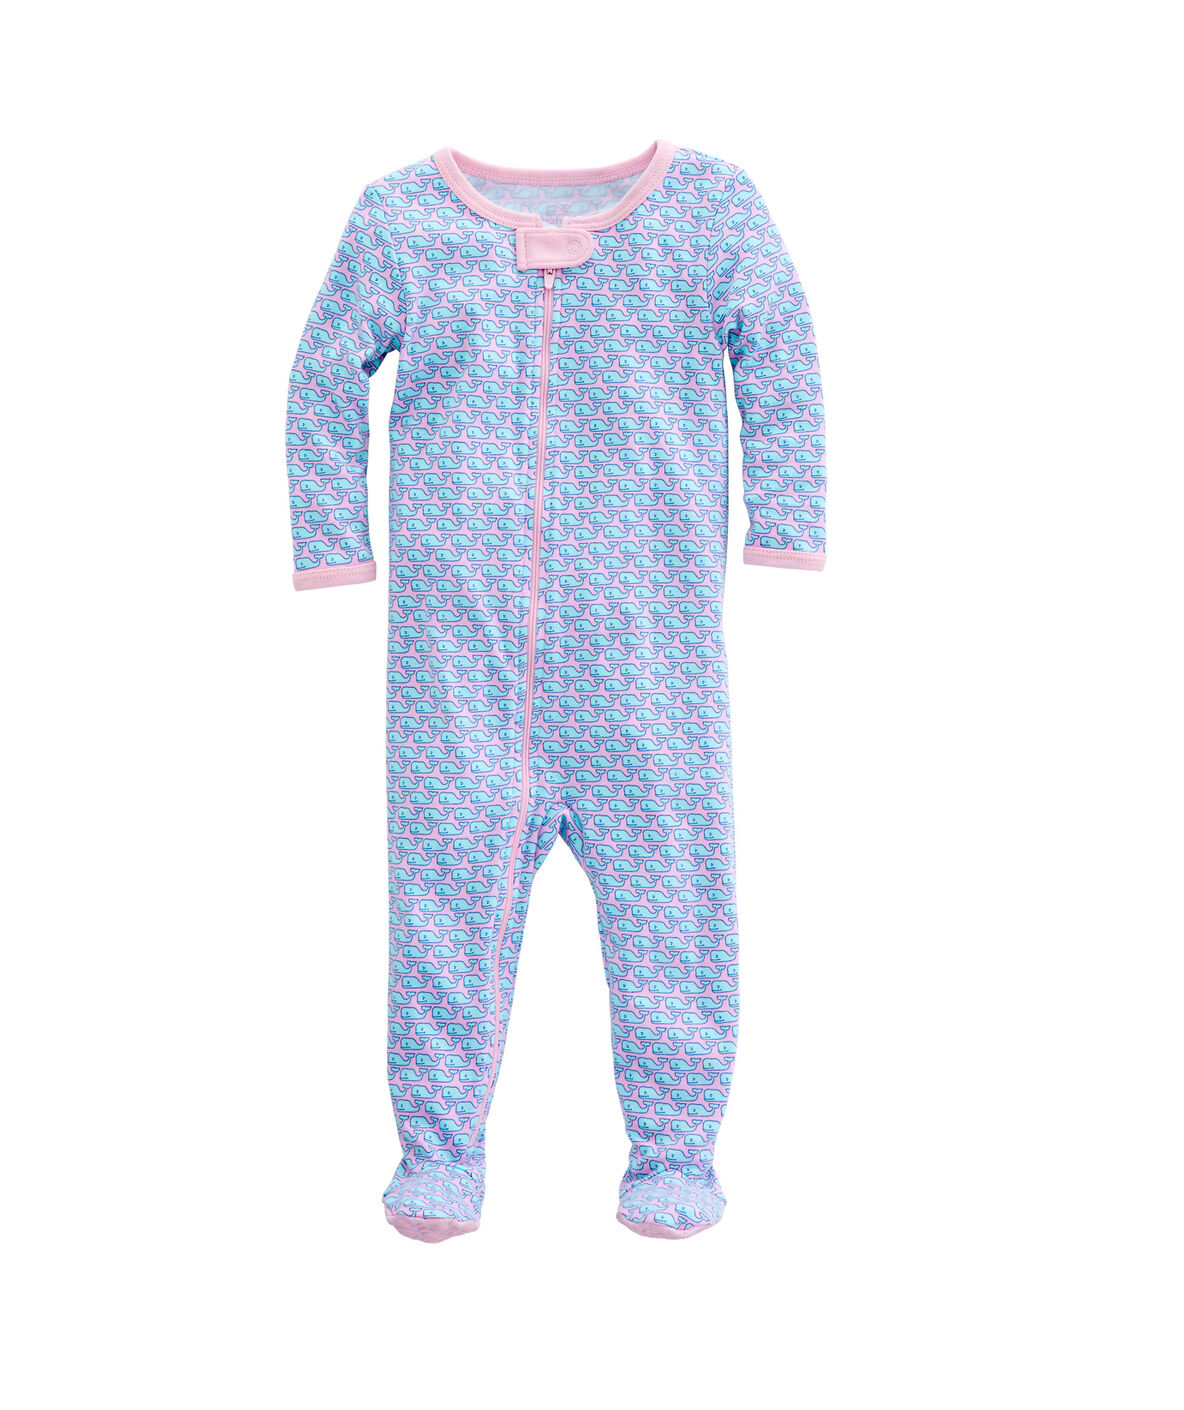 Shop Vineyard Whale Zip Footed Onesie At Vineyard Vines